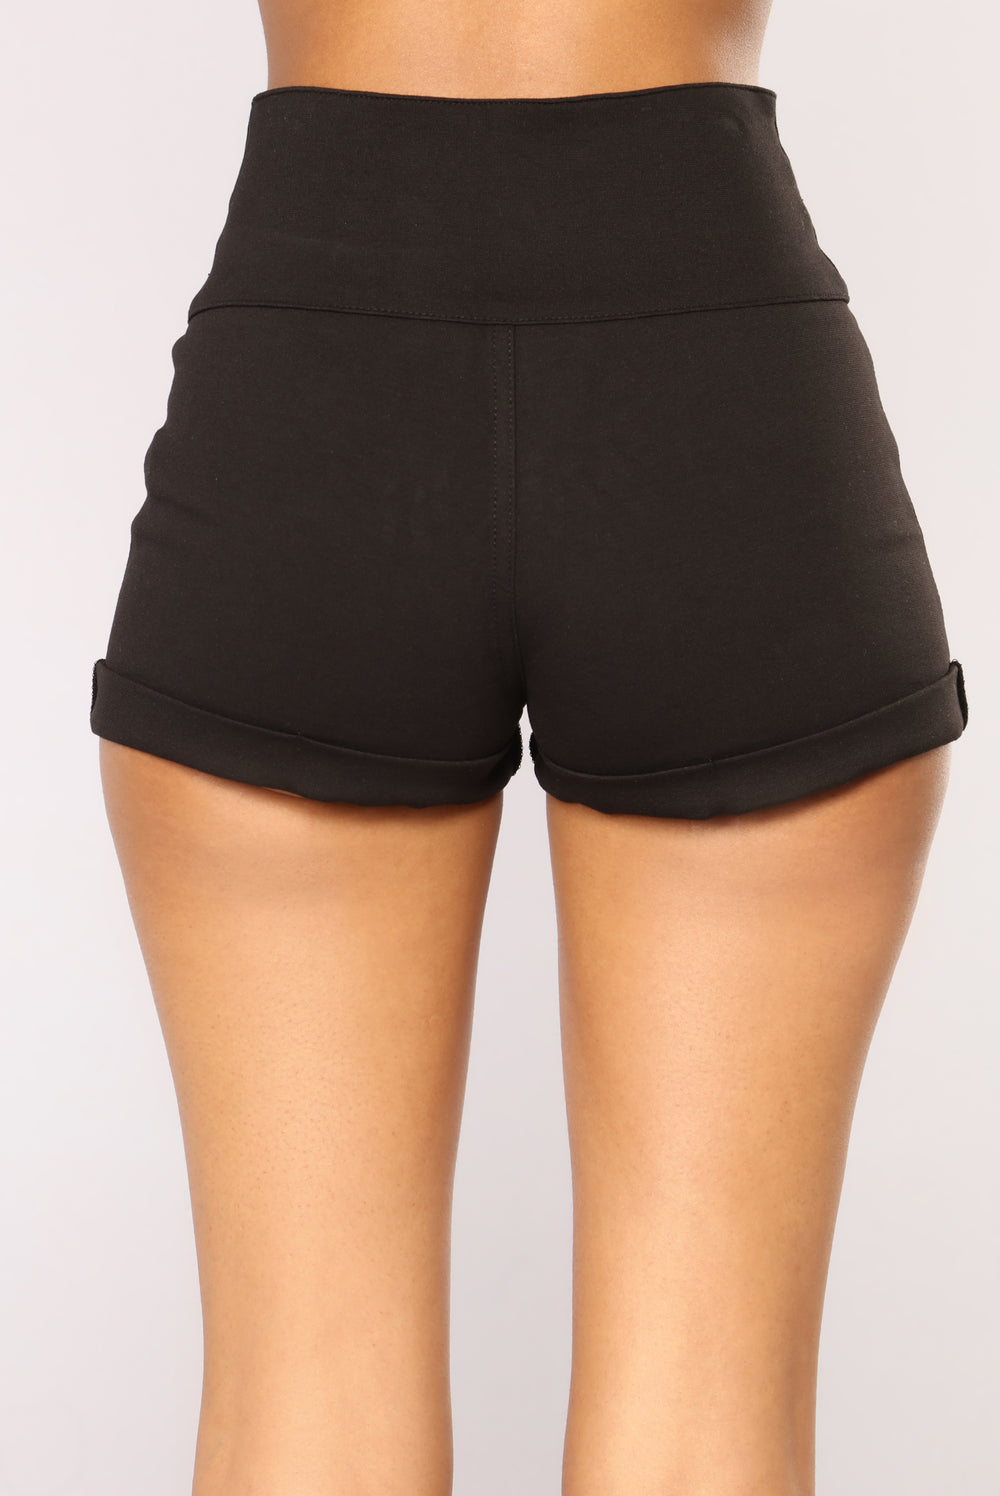 You Got It Ponte Shorts - Black